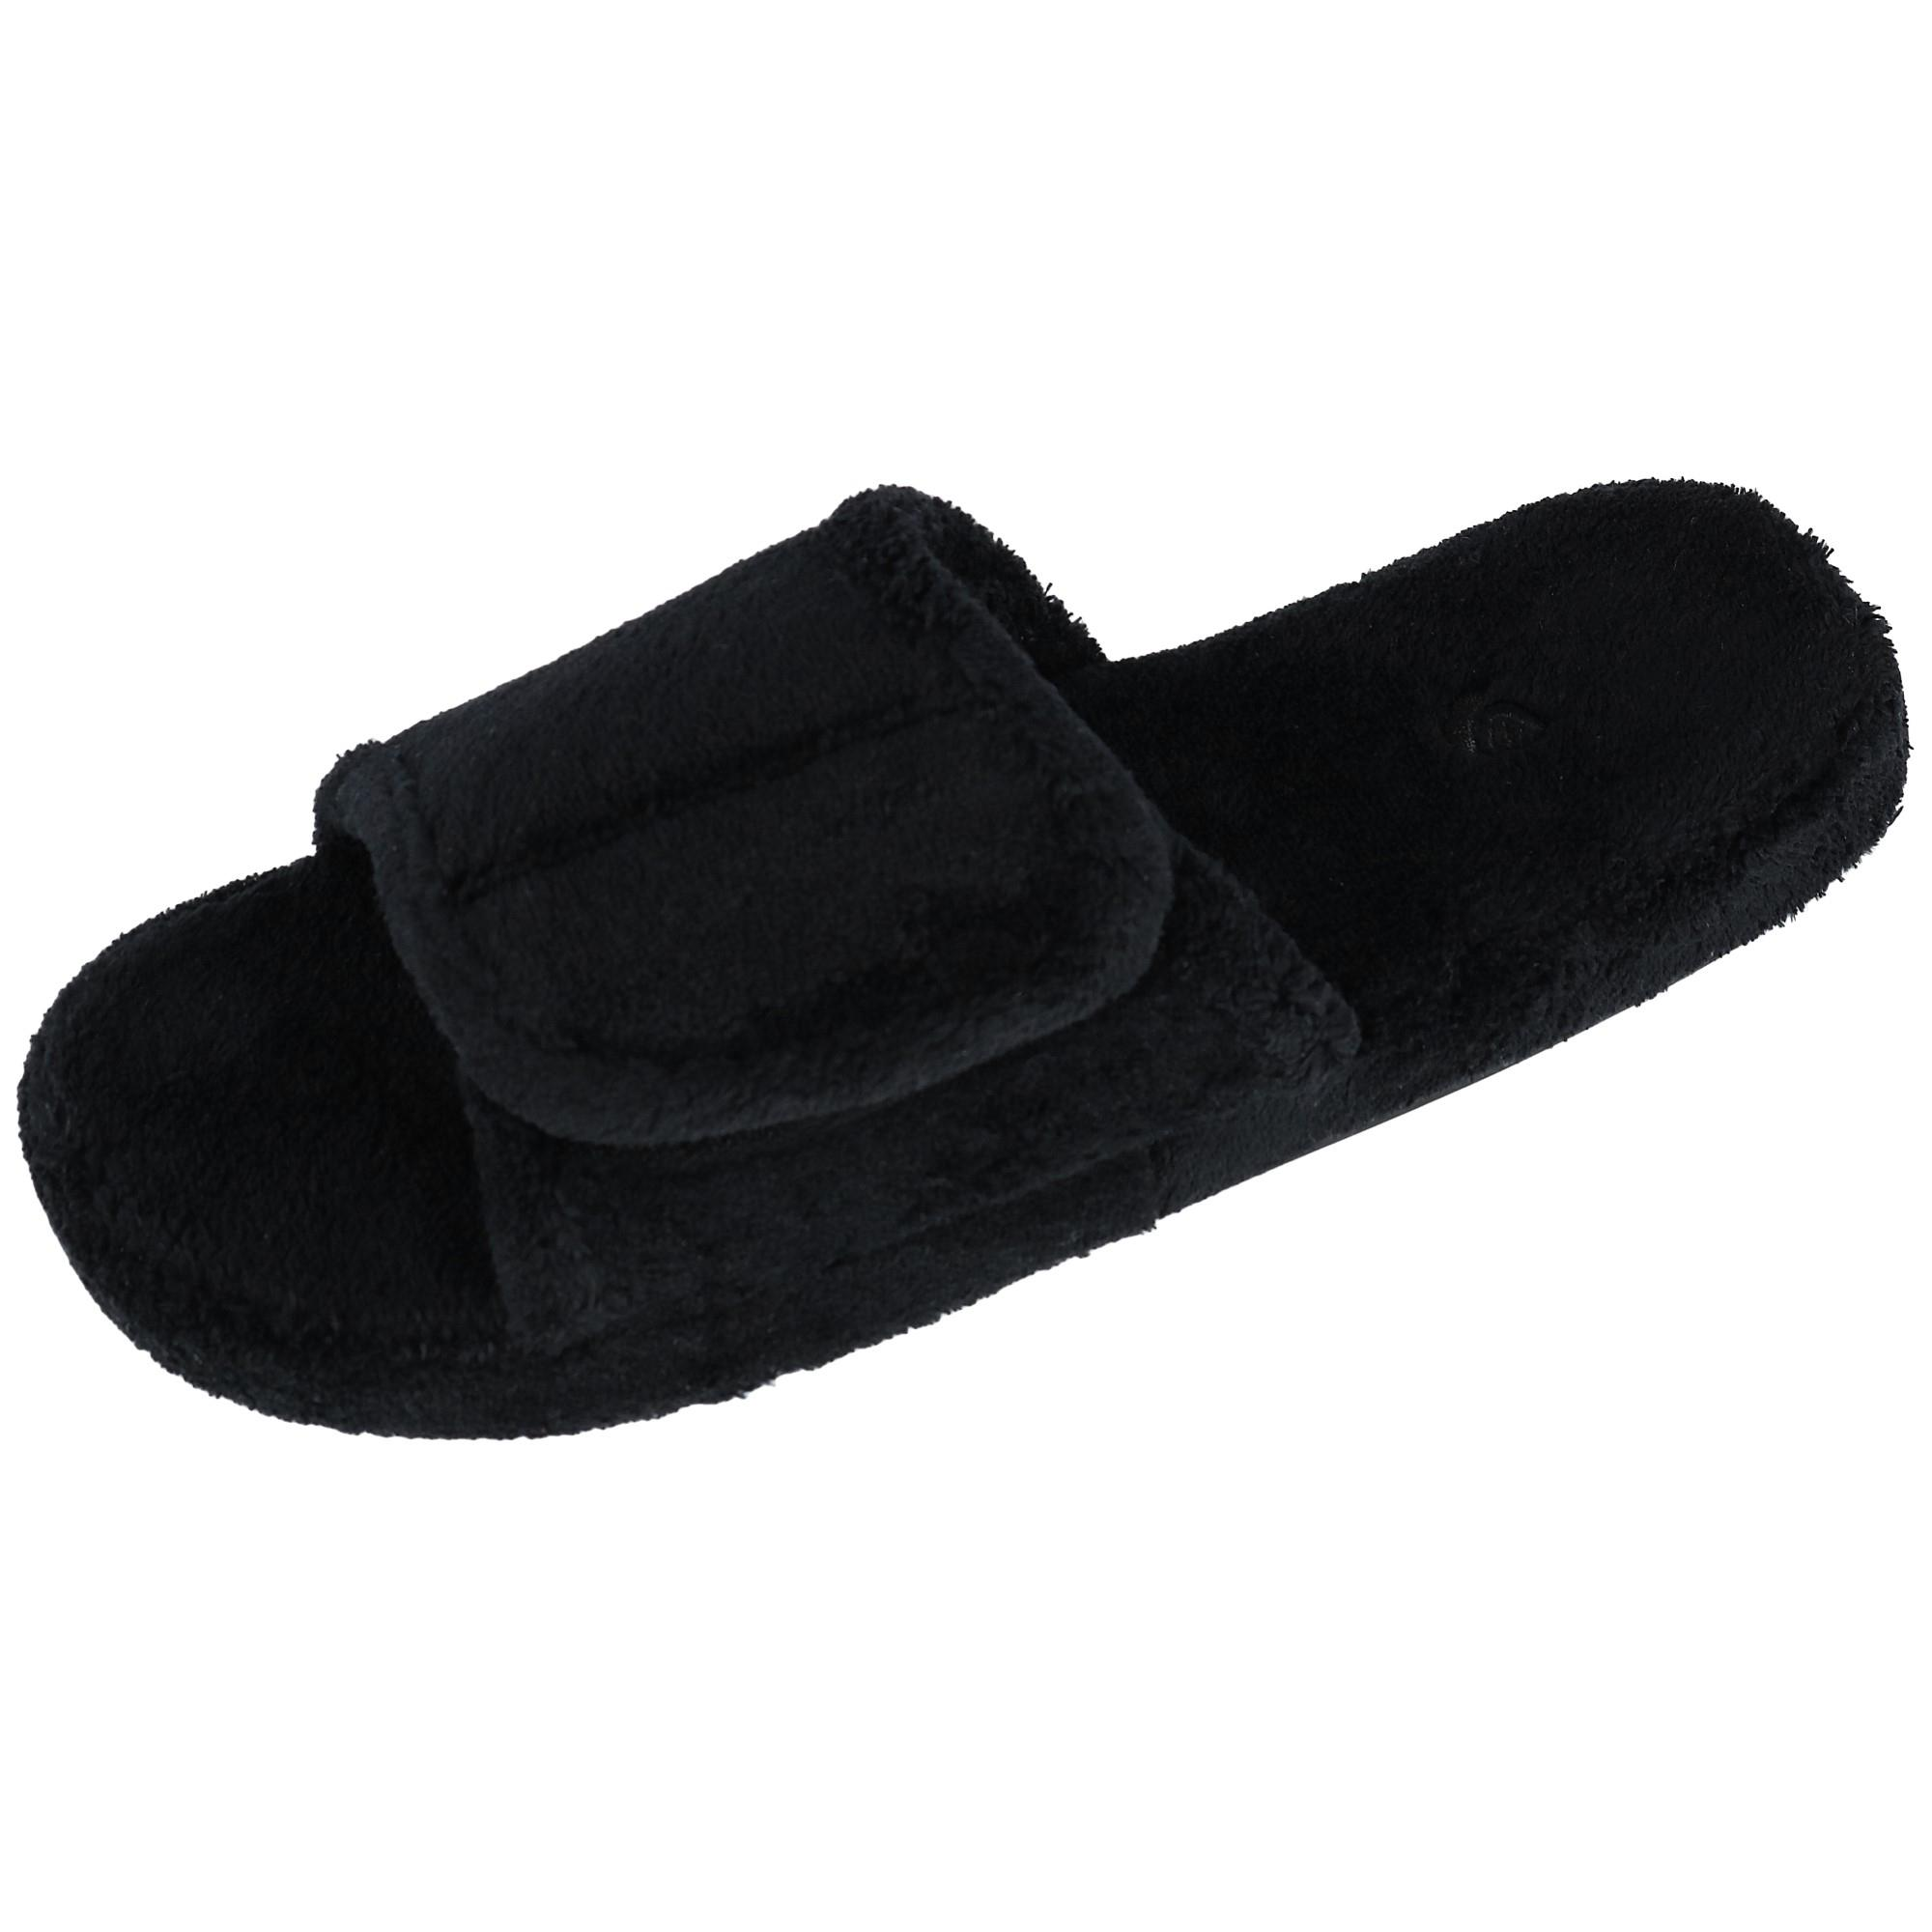 Acorn Mens Spa Slide Slippers